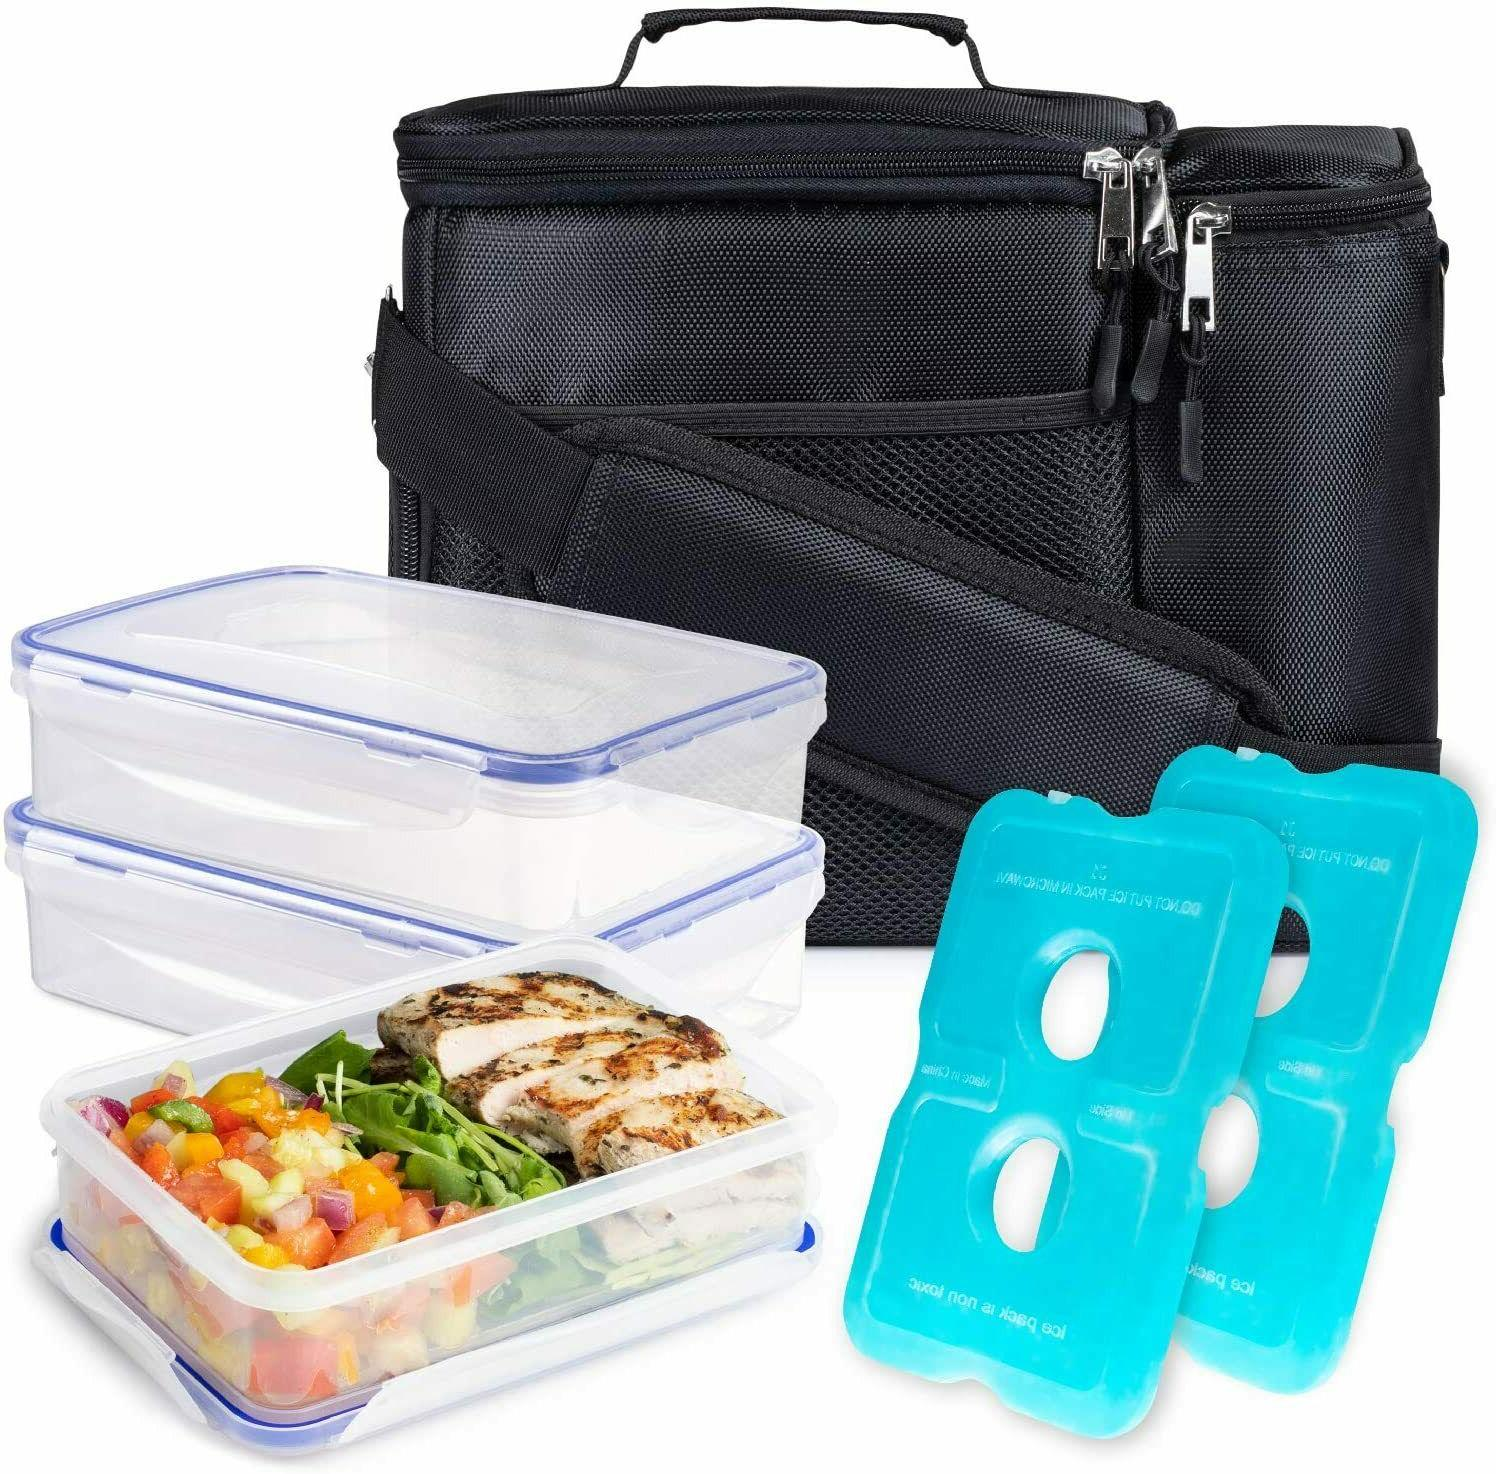 Lunch box For Men Insulated w/ compartment,